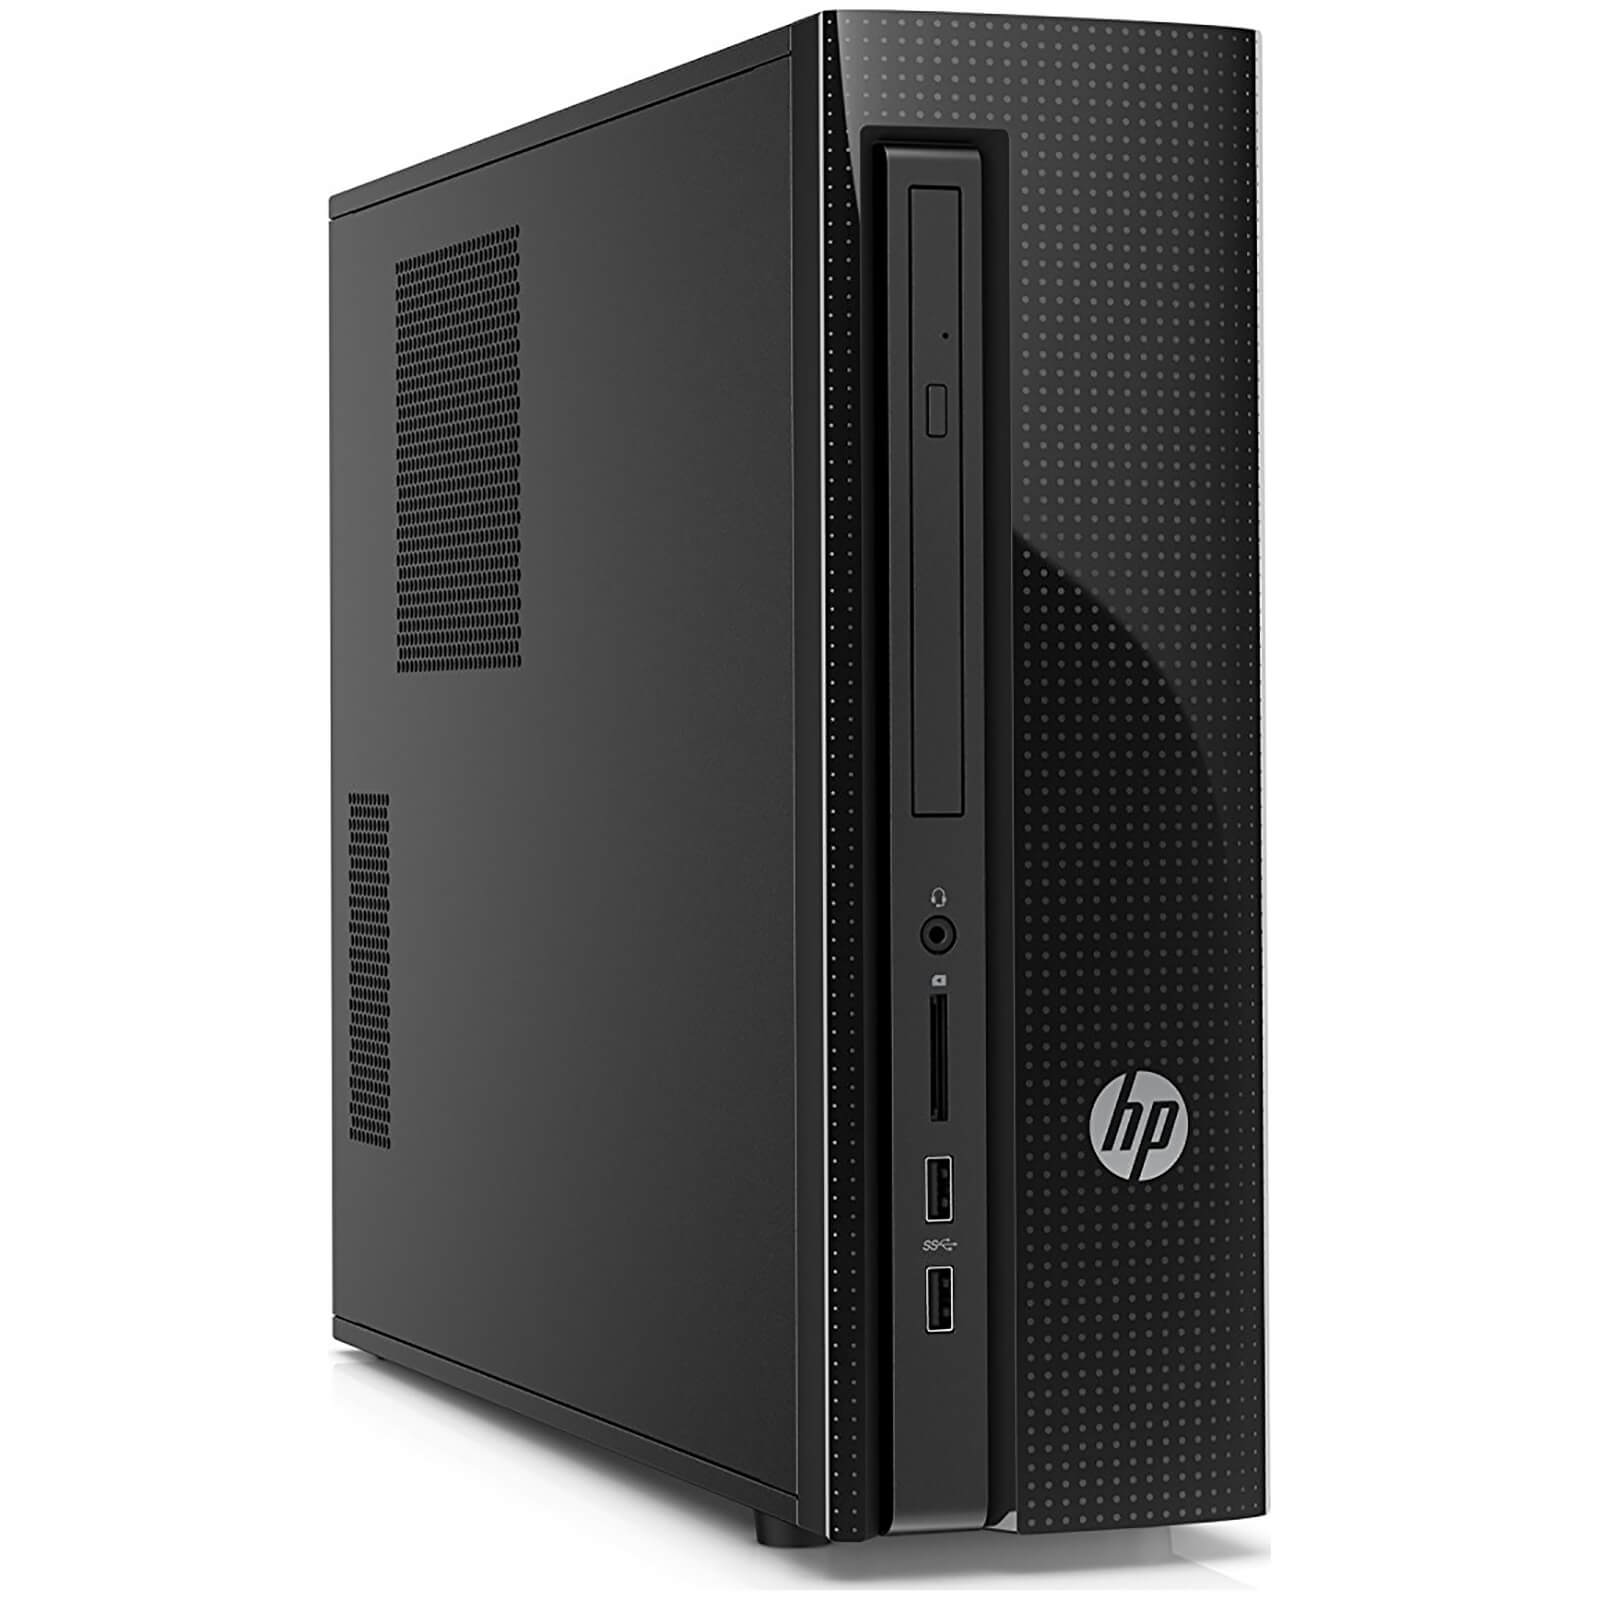 HP 411-A025NA Desktop (Intel N3700, 8GB, 1TB, 2.4Ghz, Windows 10) - Manufacturer Refurbished